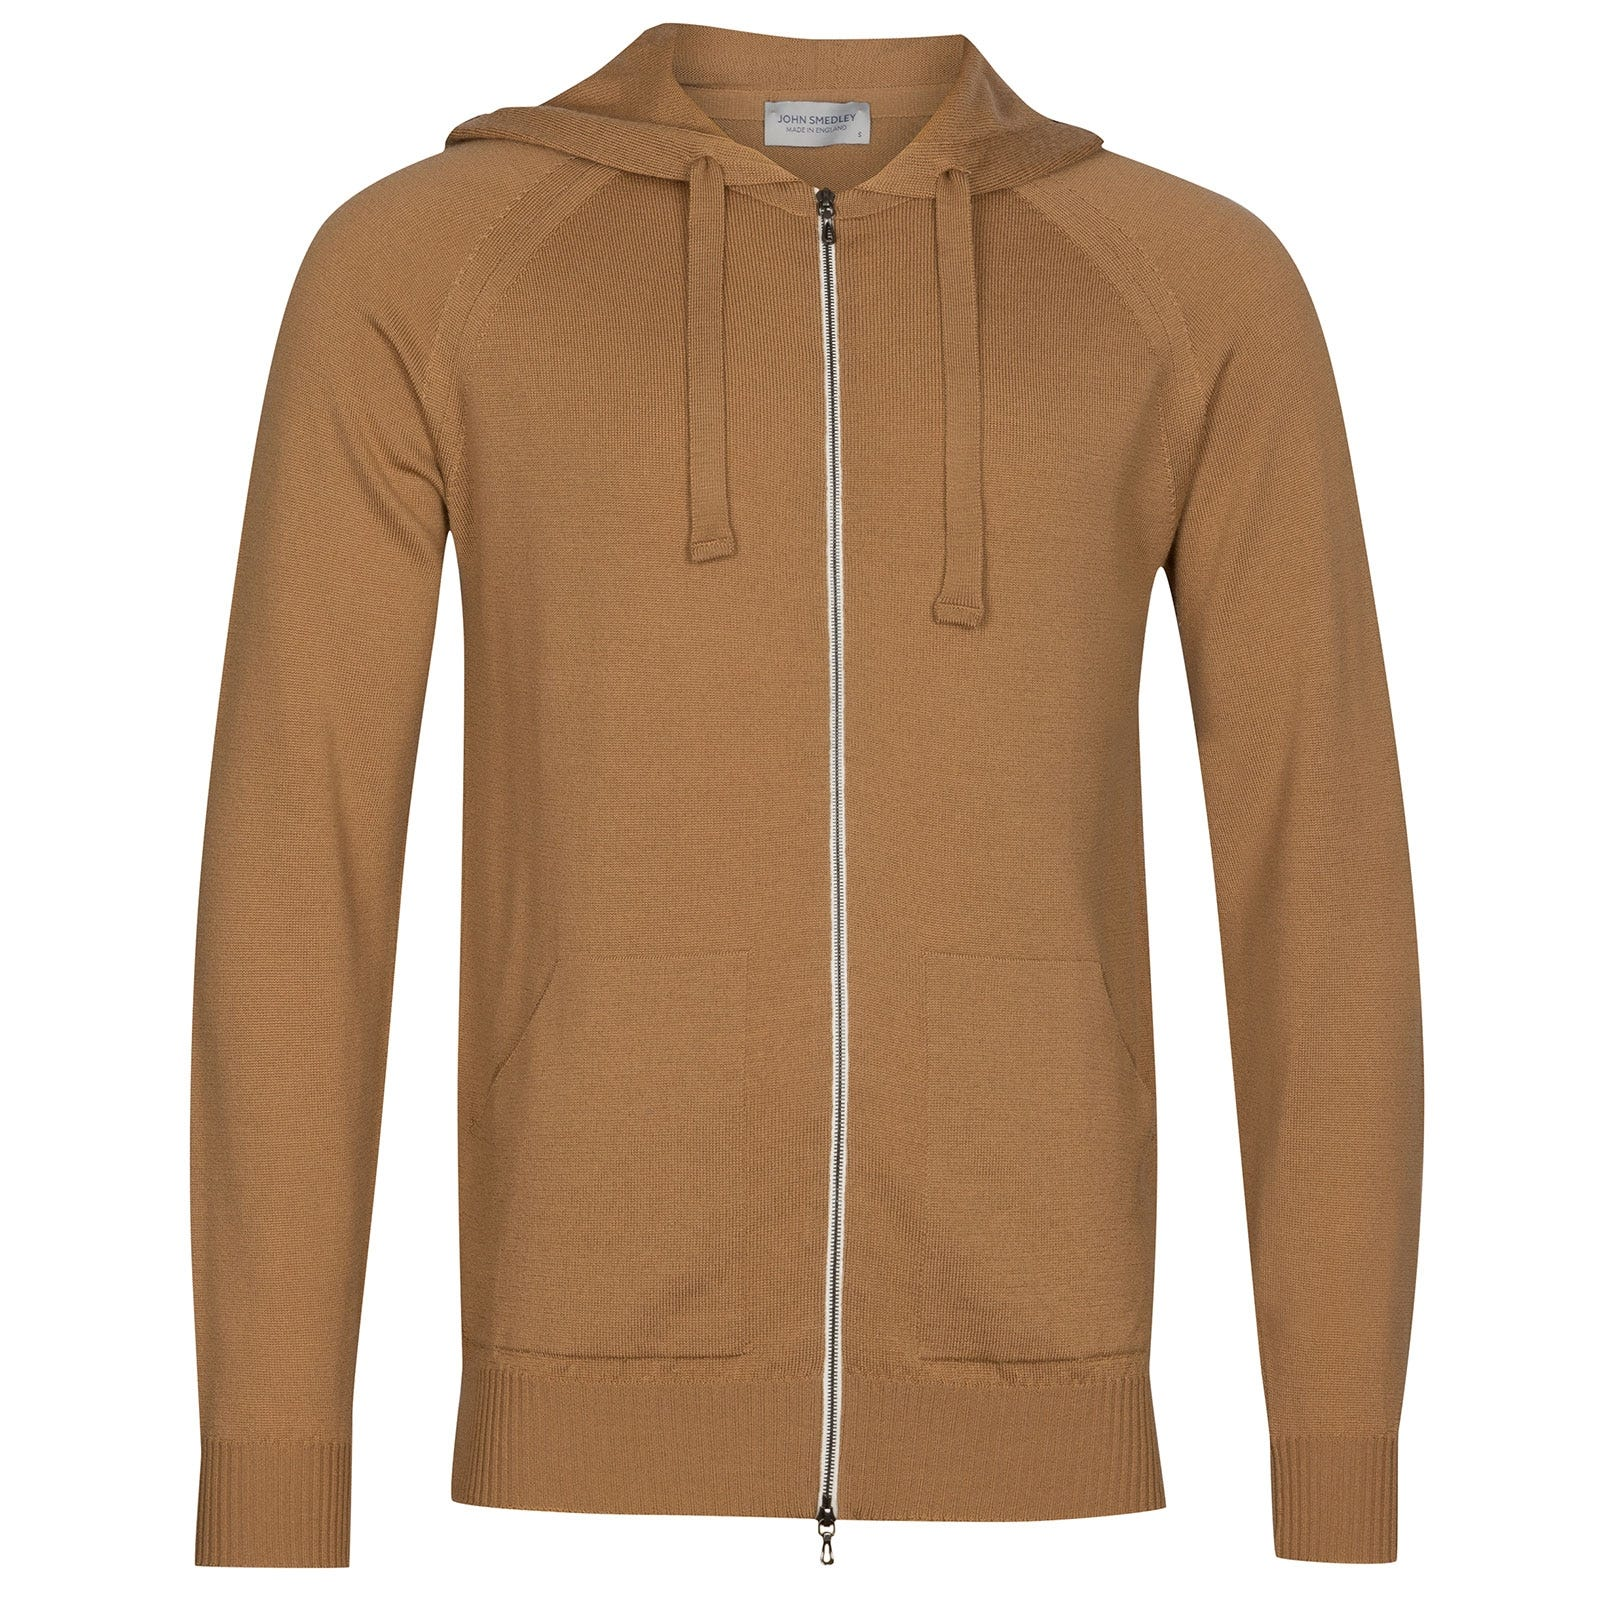 John Smedley Reservoir Merino Wool Jacket in Camel-XL